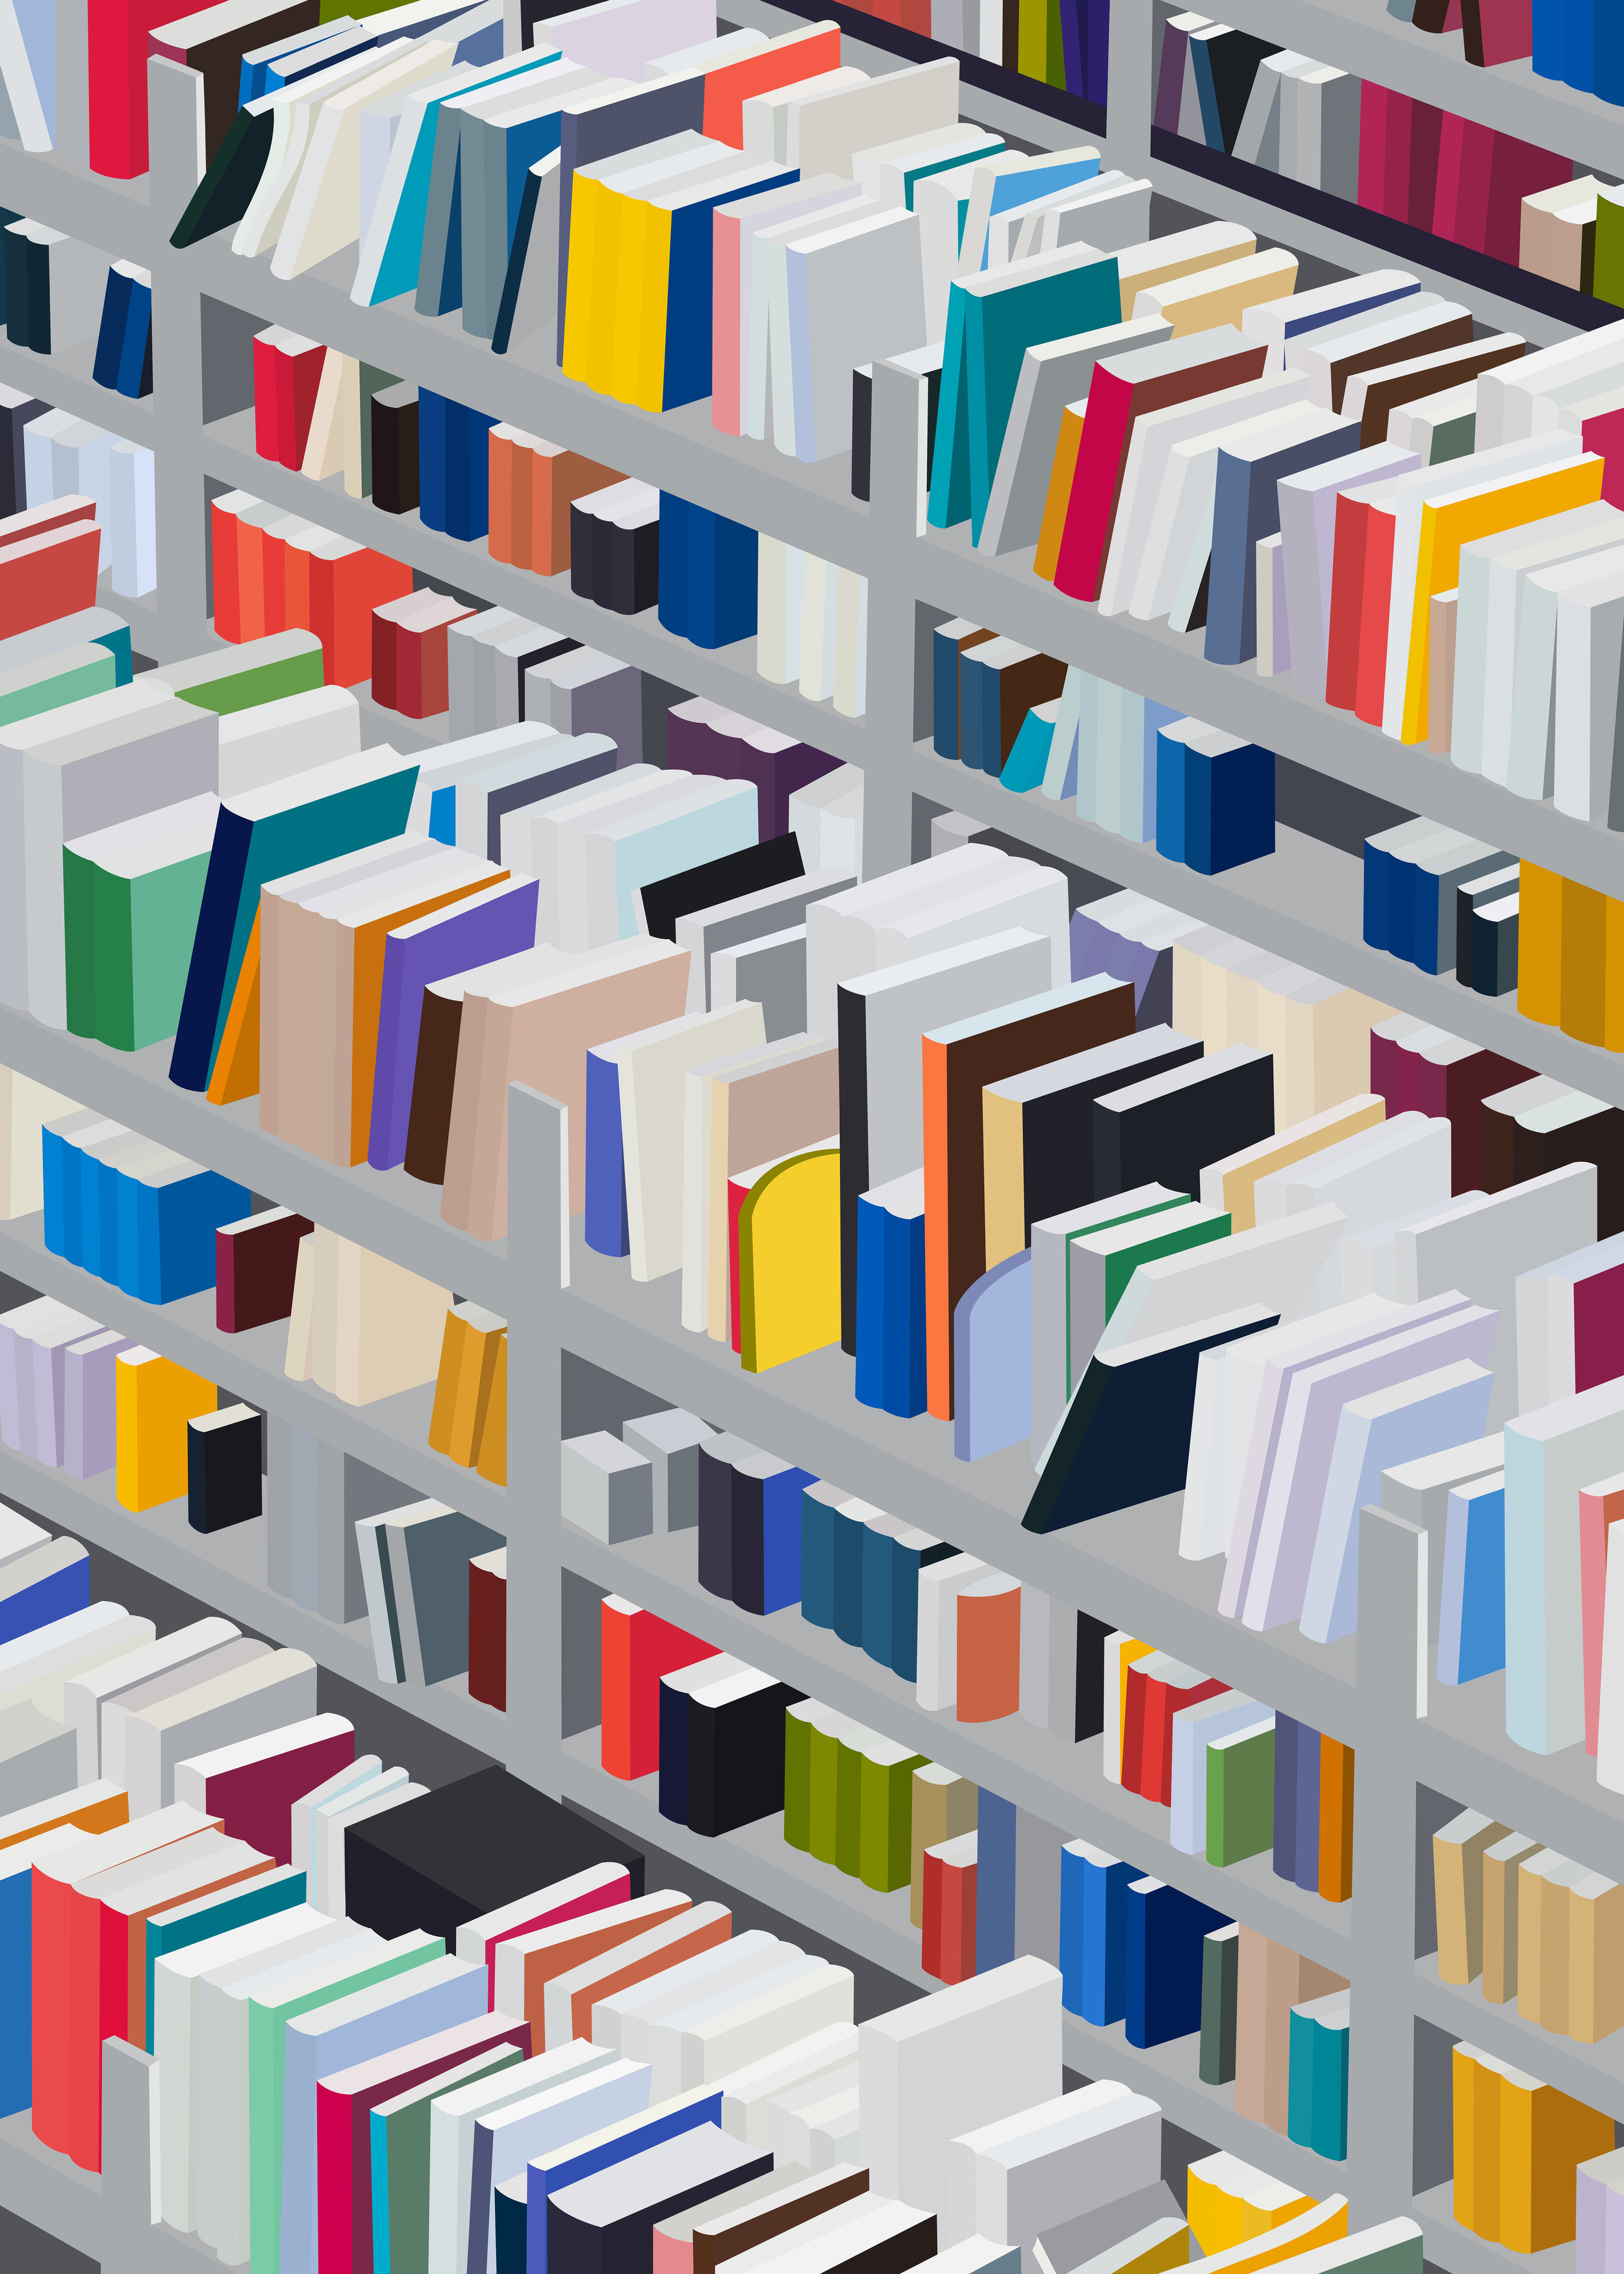 Amazon Books, 2018, archival inkjet and screenprint, 42 x 30 inches image and sheet, edition of 20